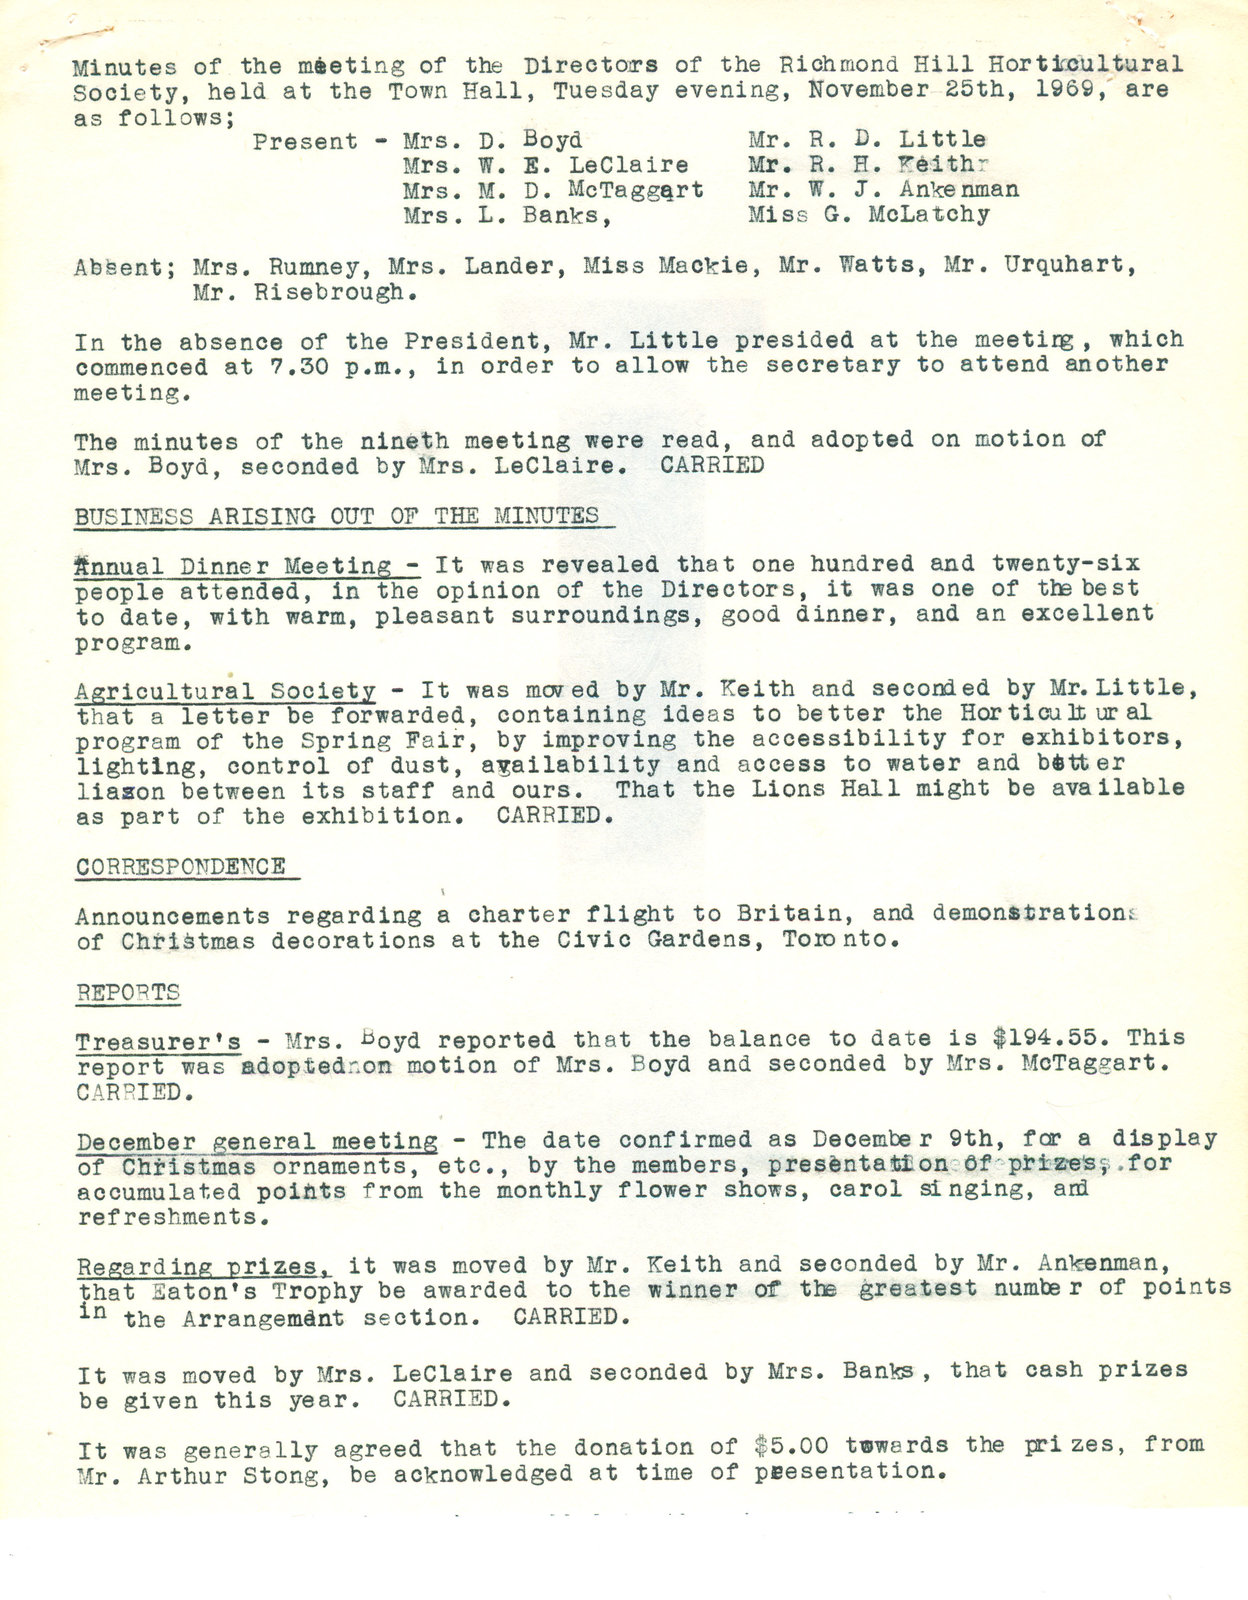 Minutes of the meeting of the Directors of the Richmond Hill Horticultural Society